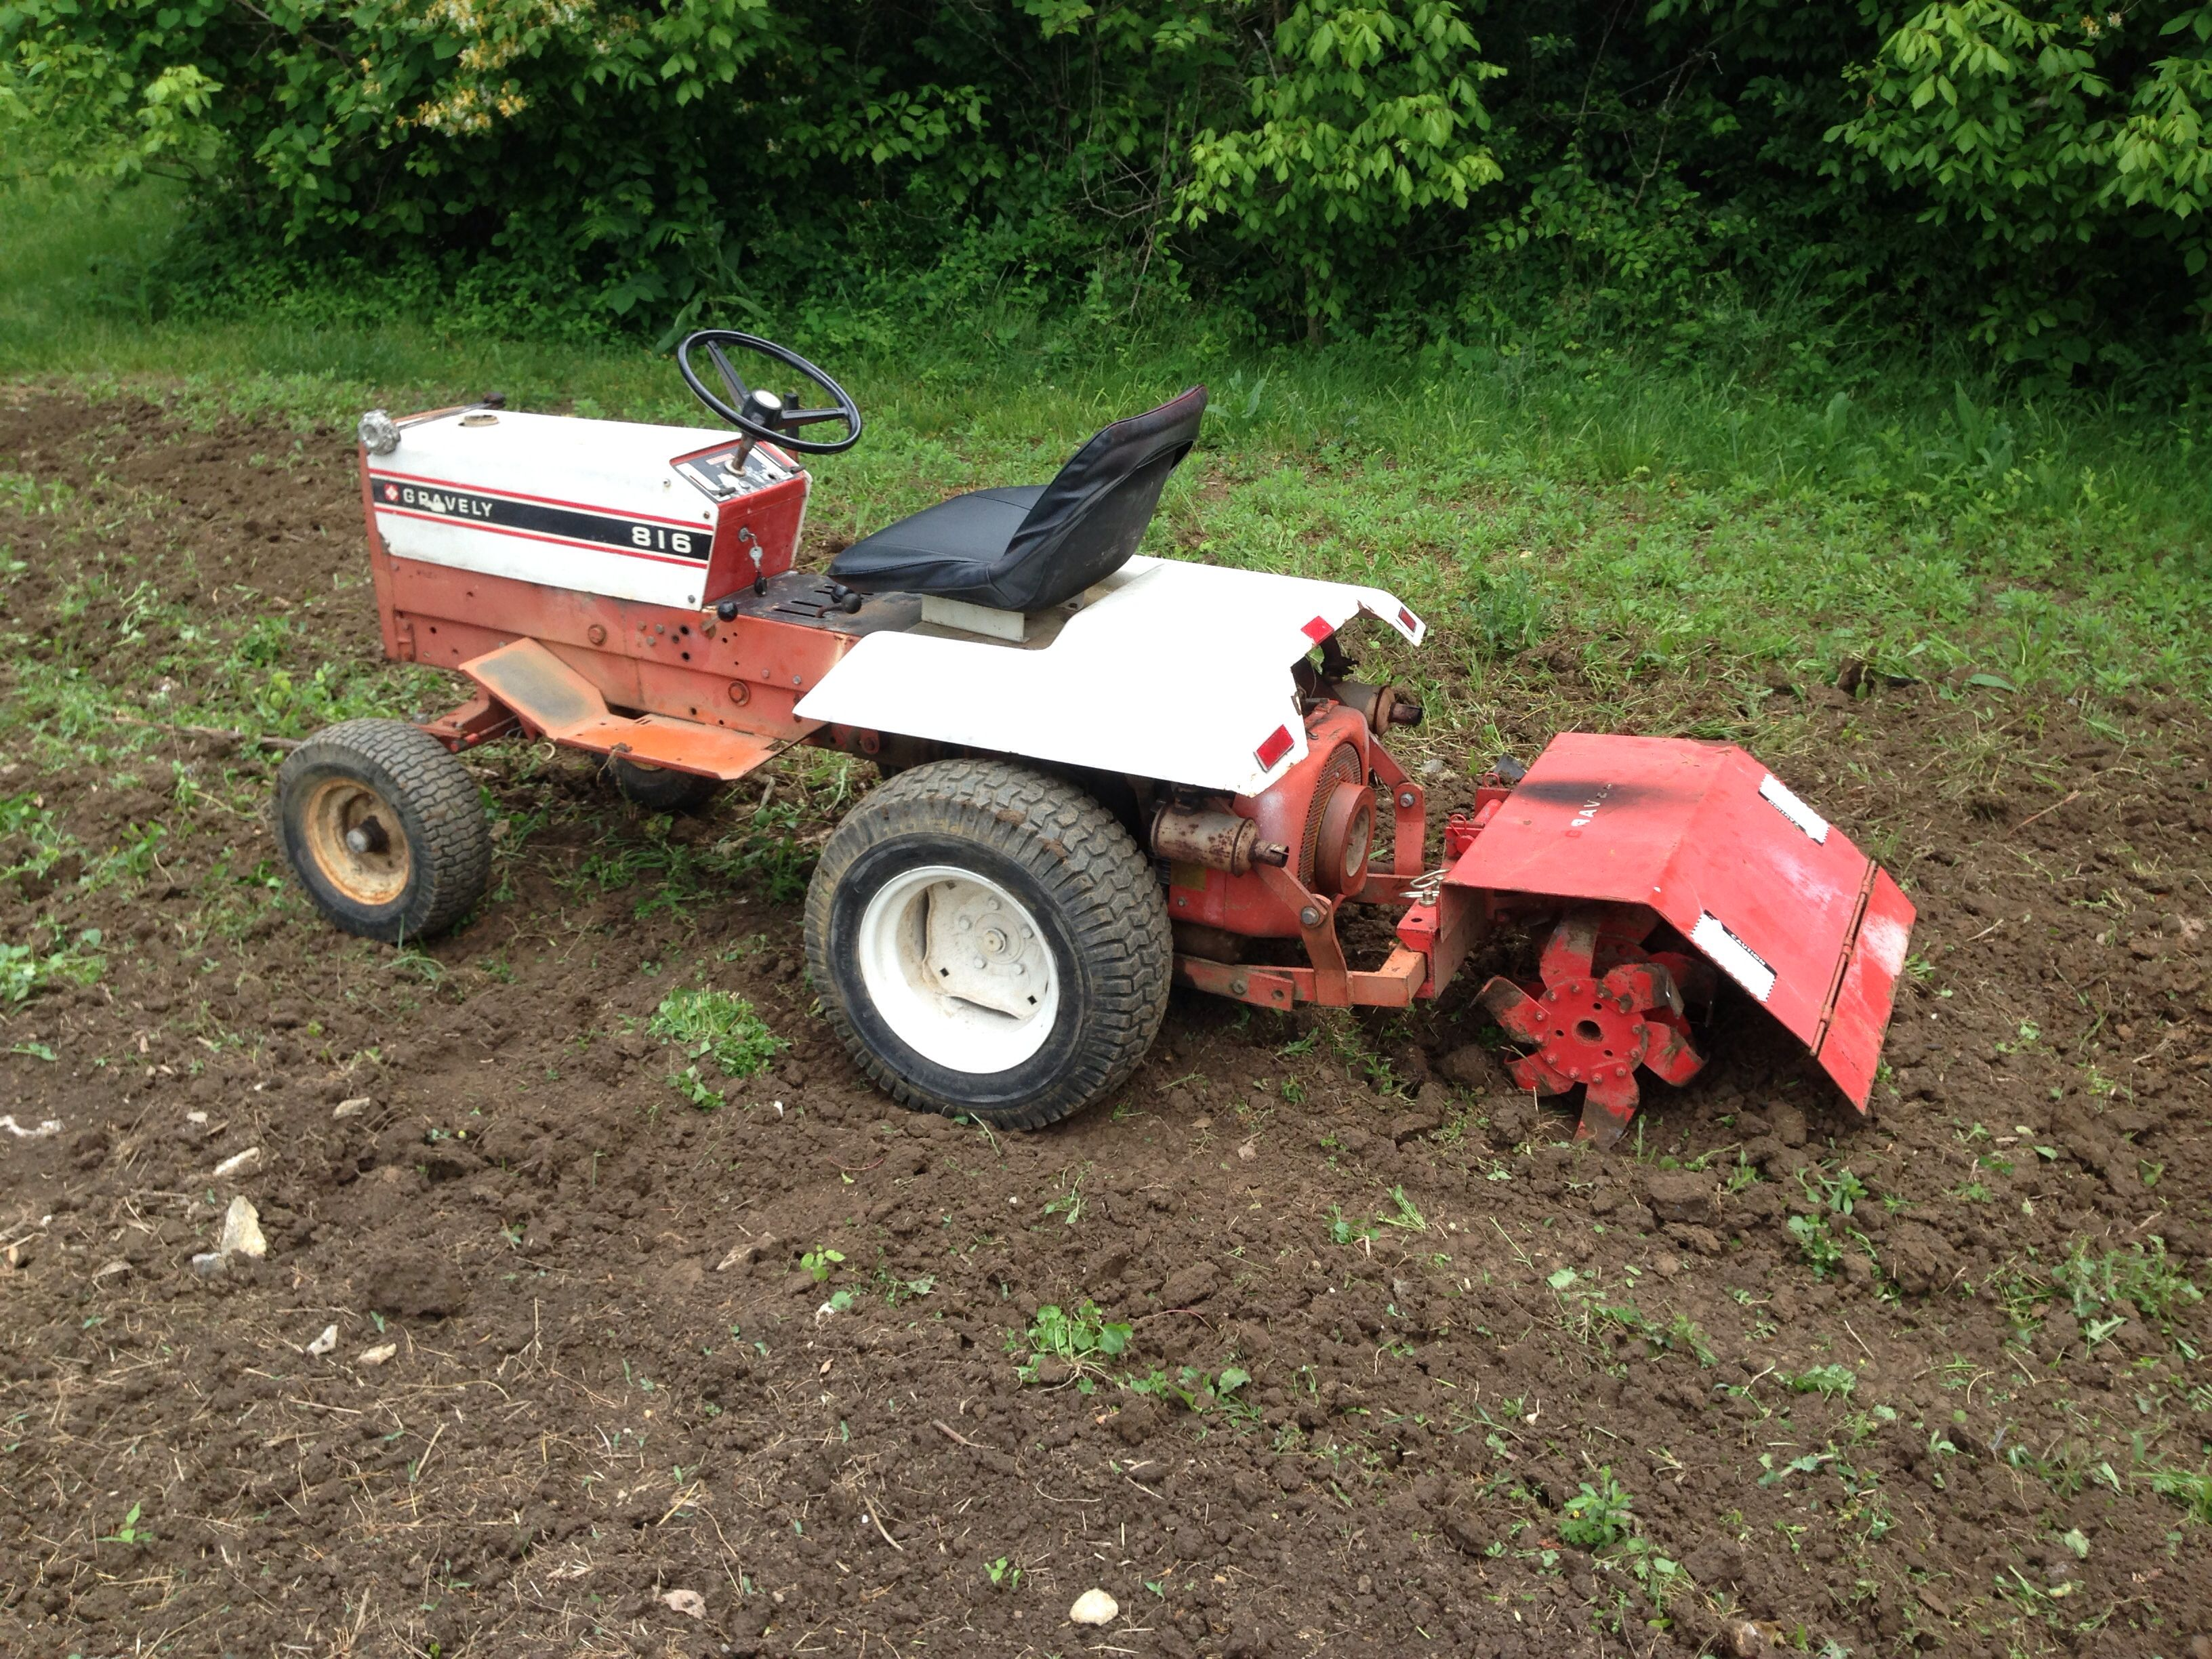 1974 816 With Tiller With Images Antique Tractors Vintage